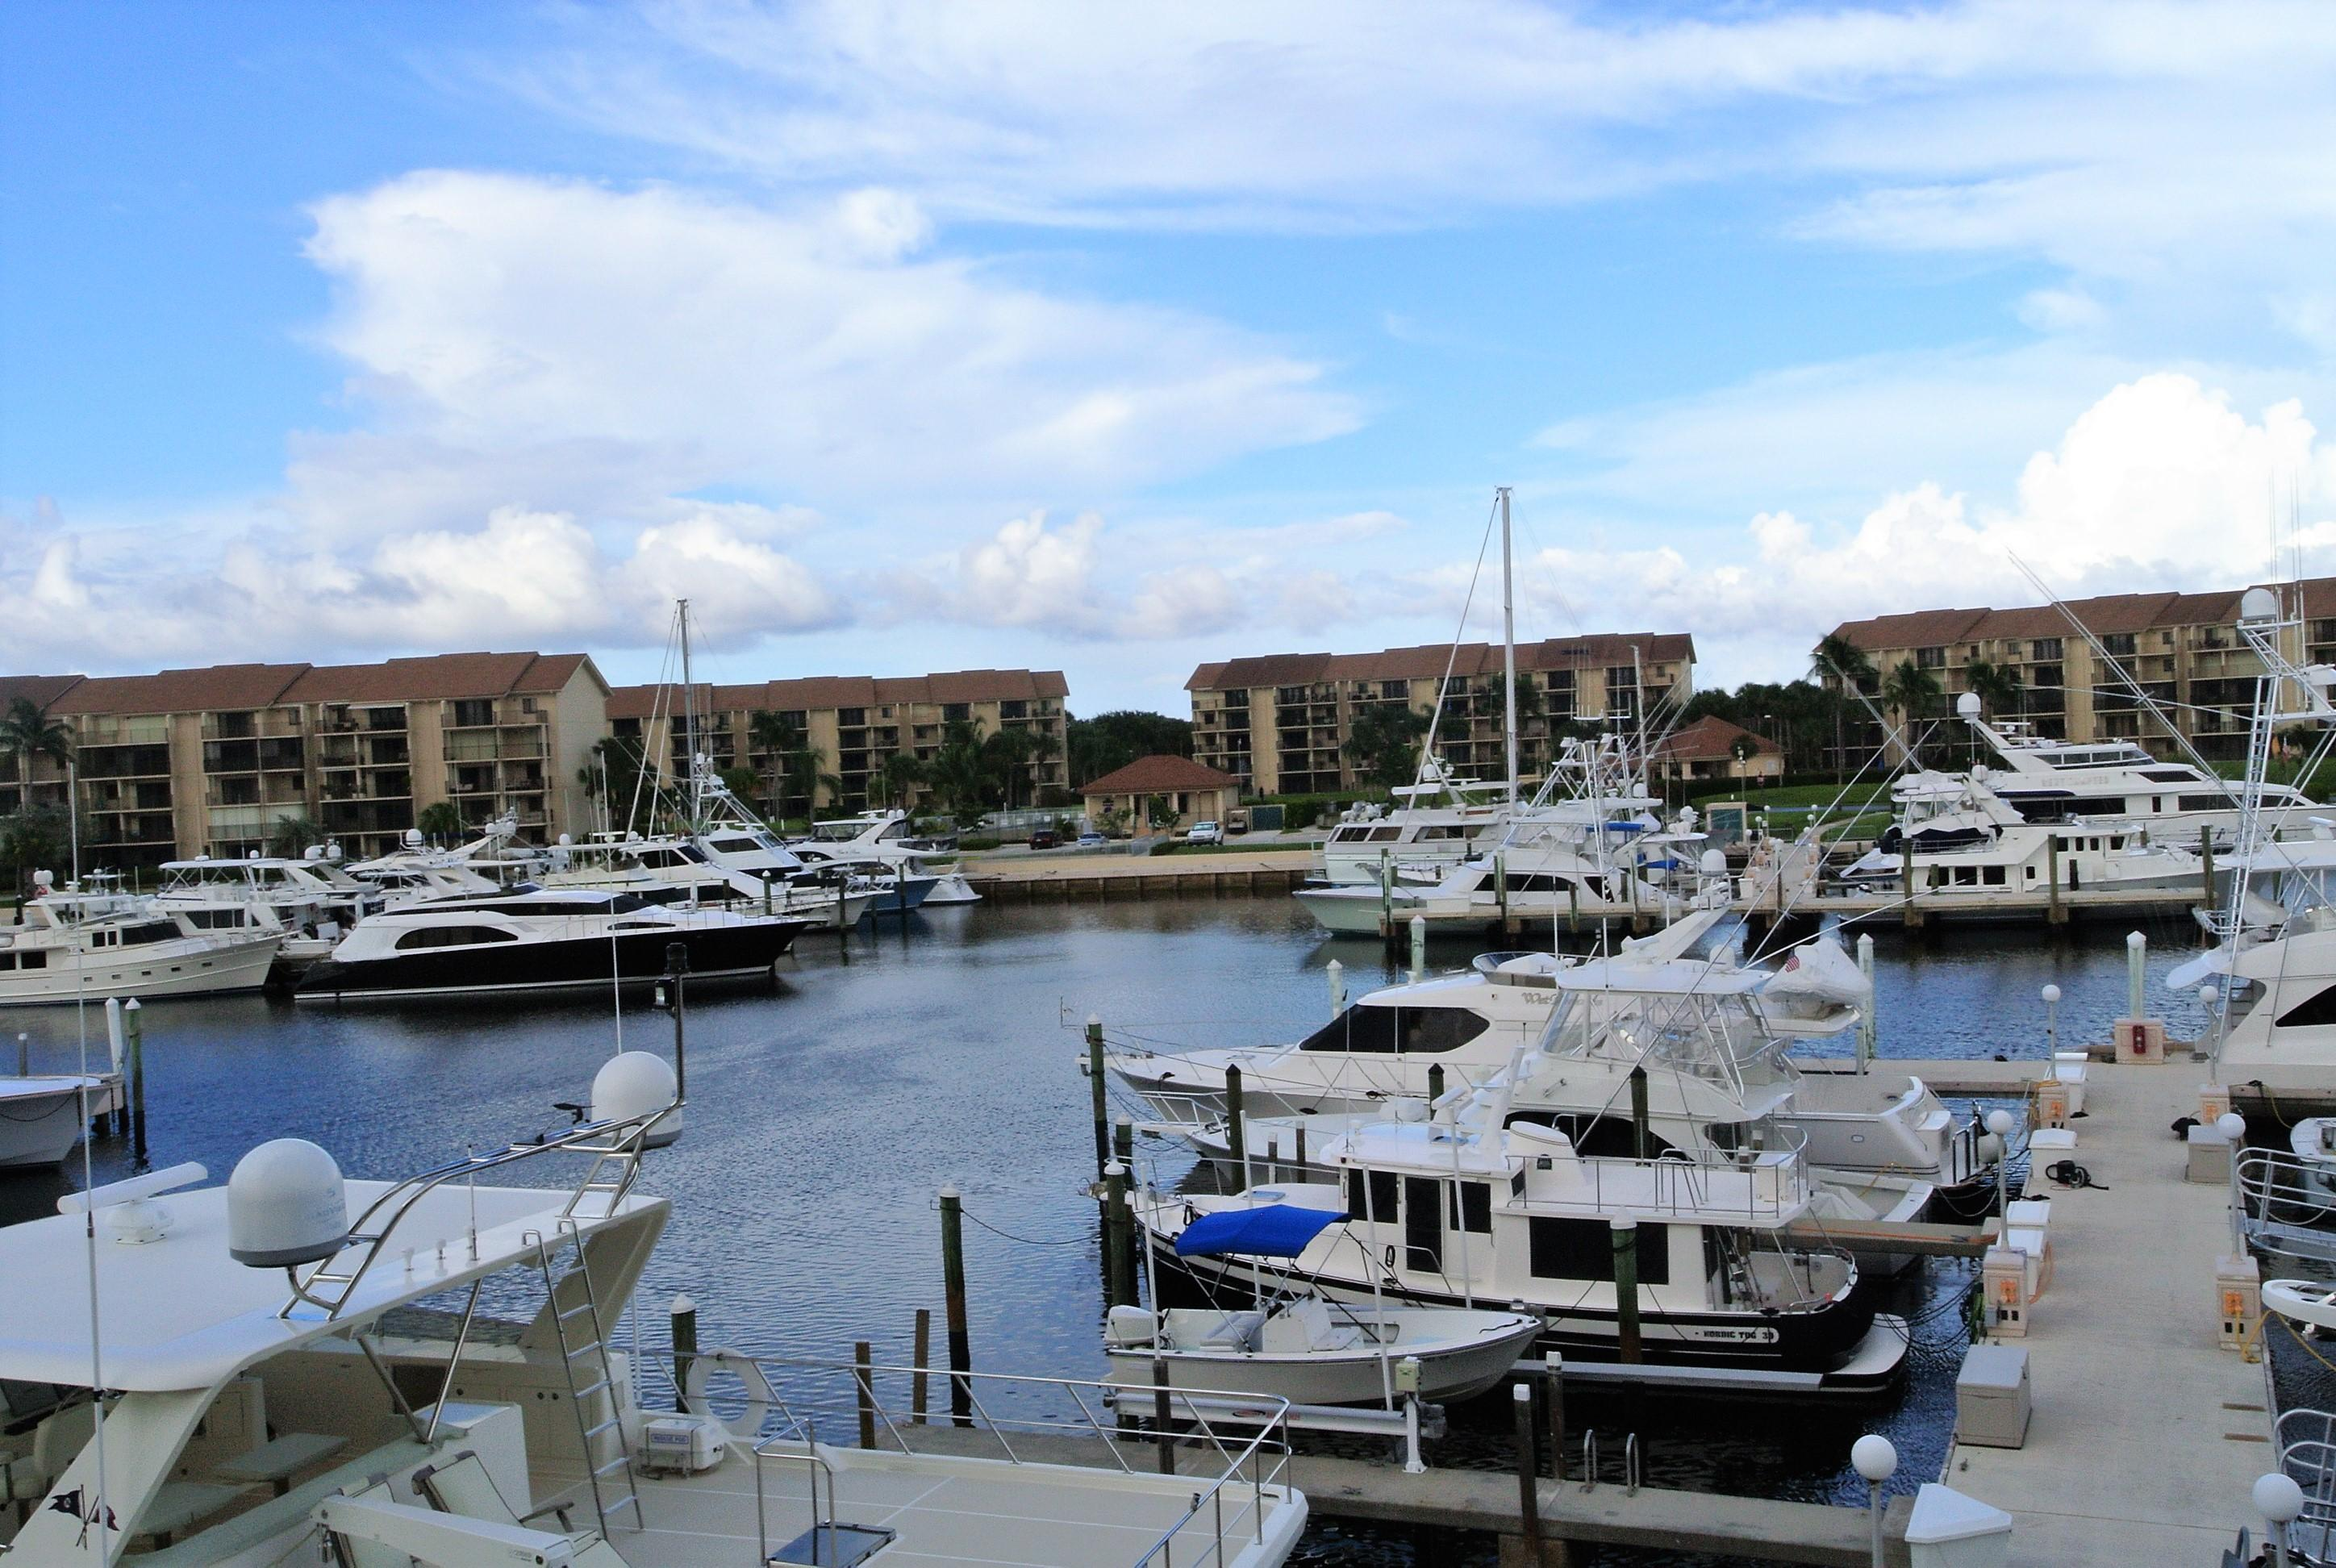 BLUFFS MARINA HOMES